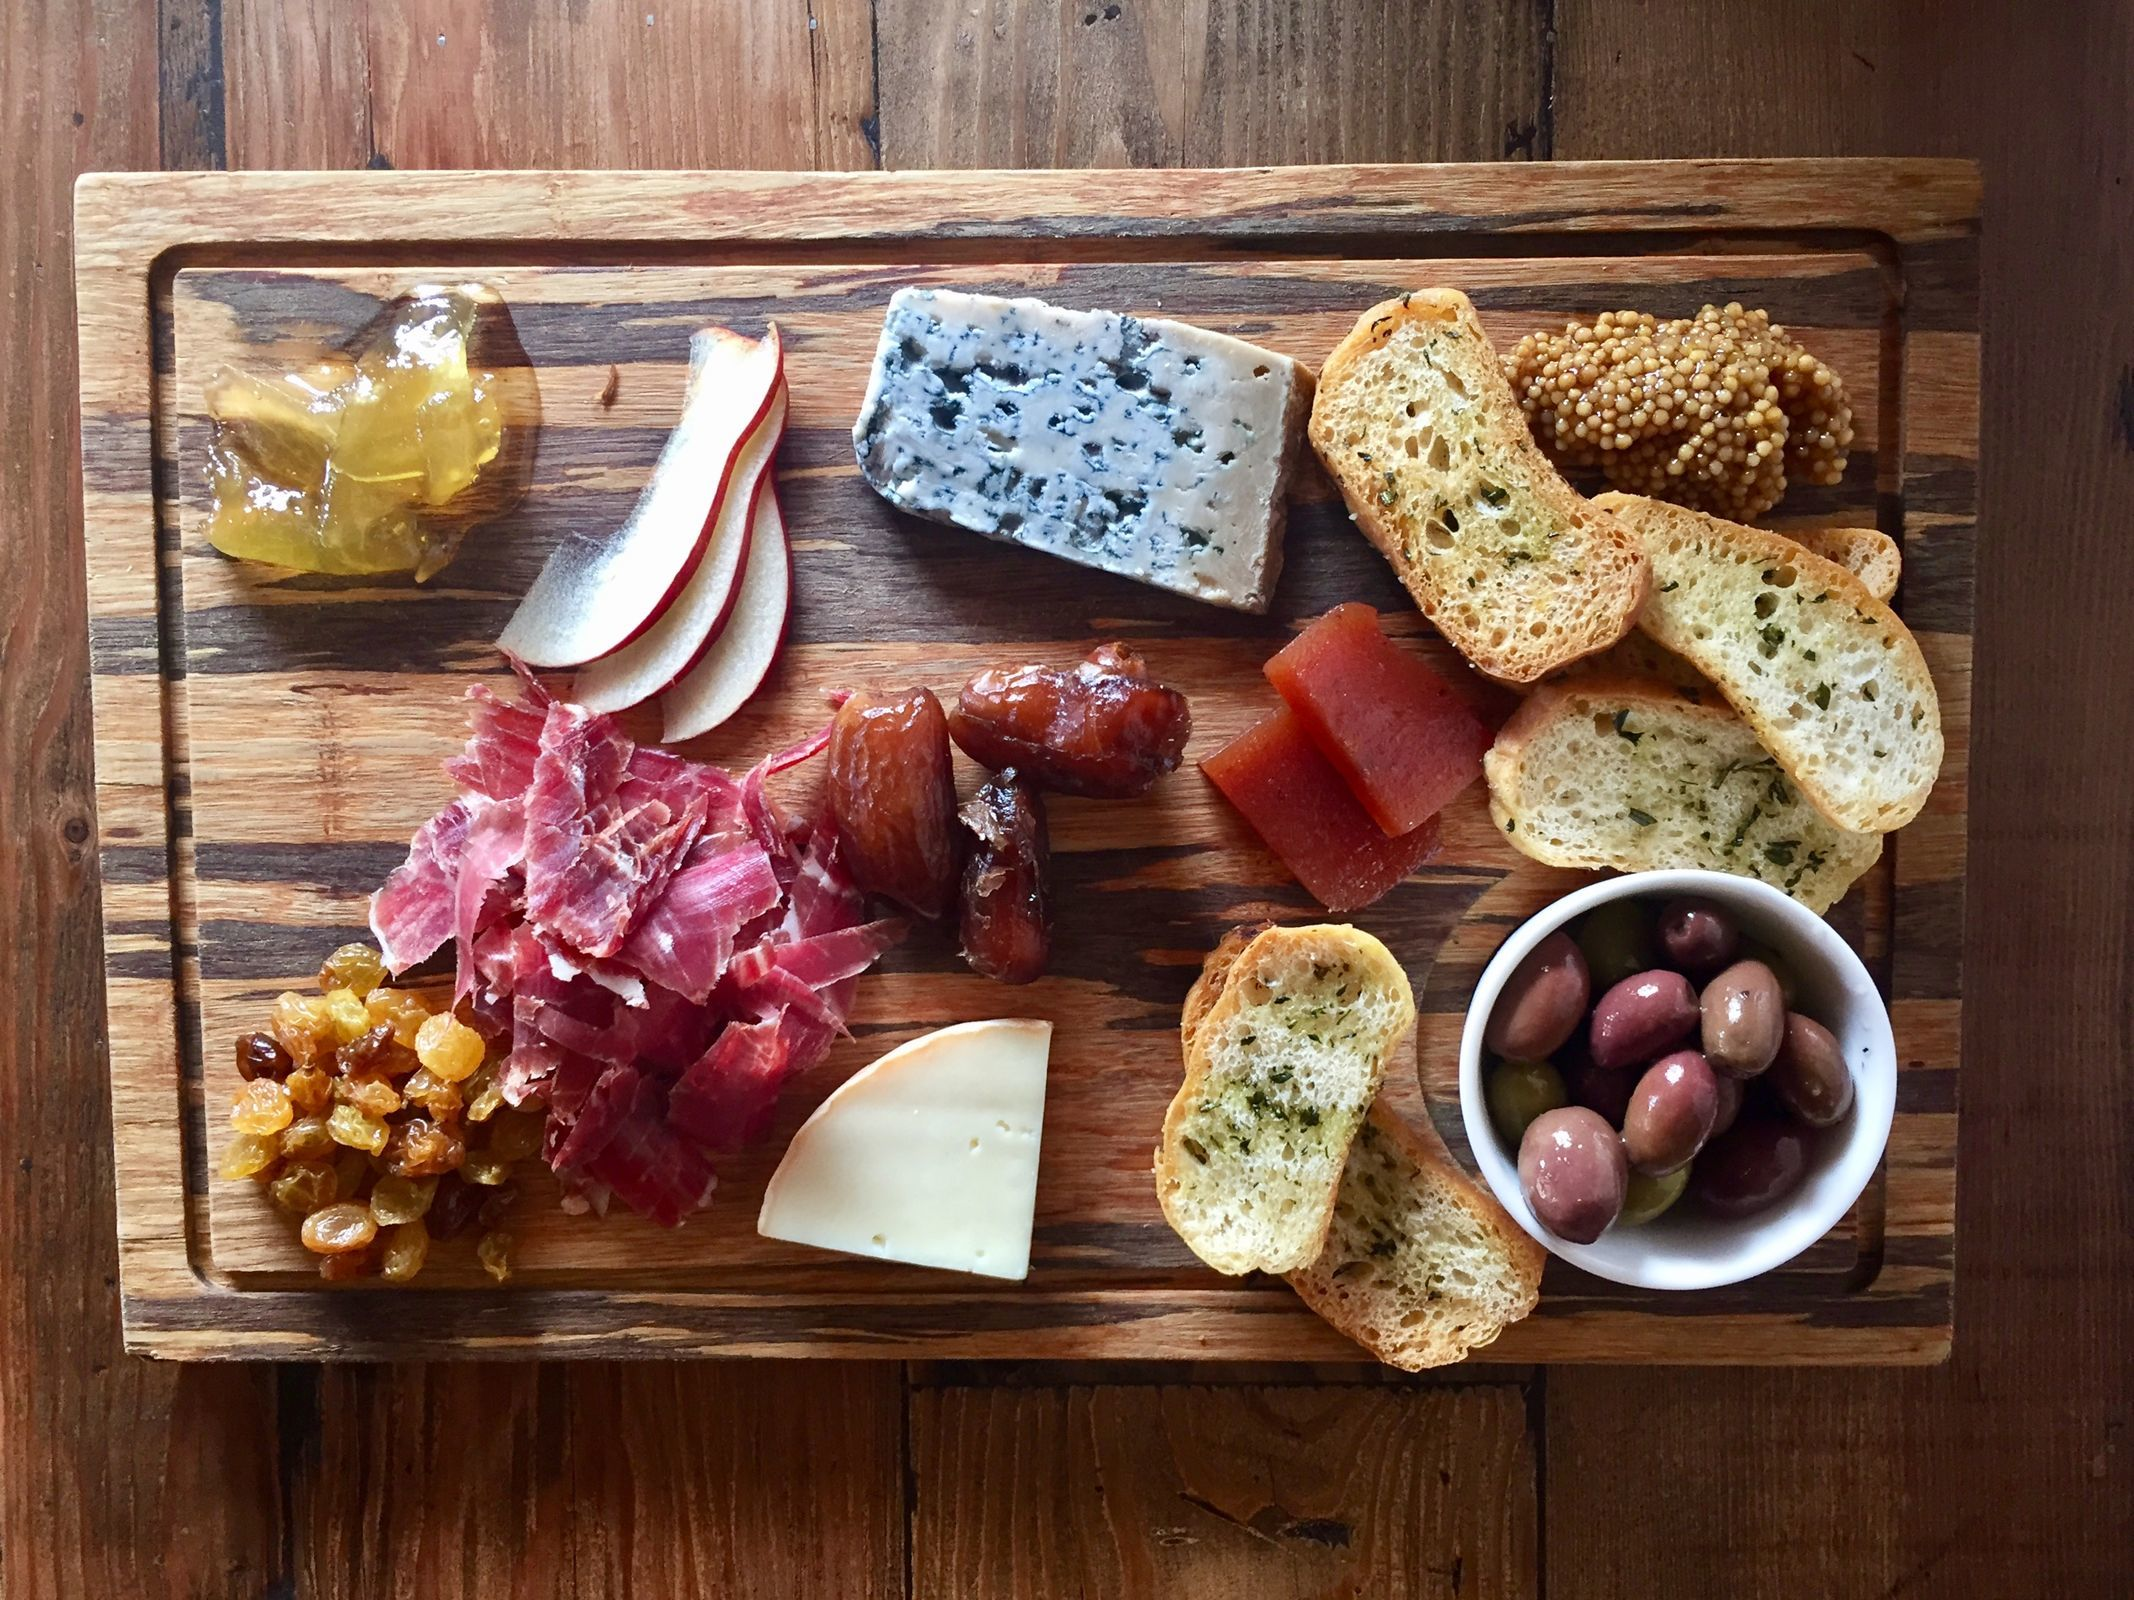 The Iberico ham and cheese platter from Cerdo in Conshohocken. (CRAIG LABAN / Staff)